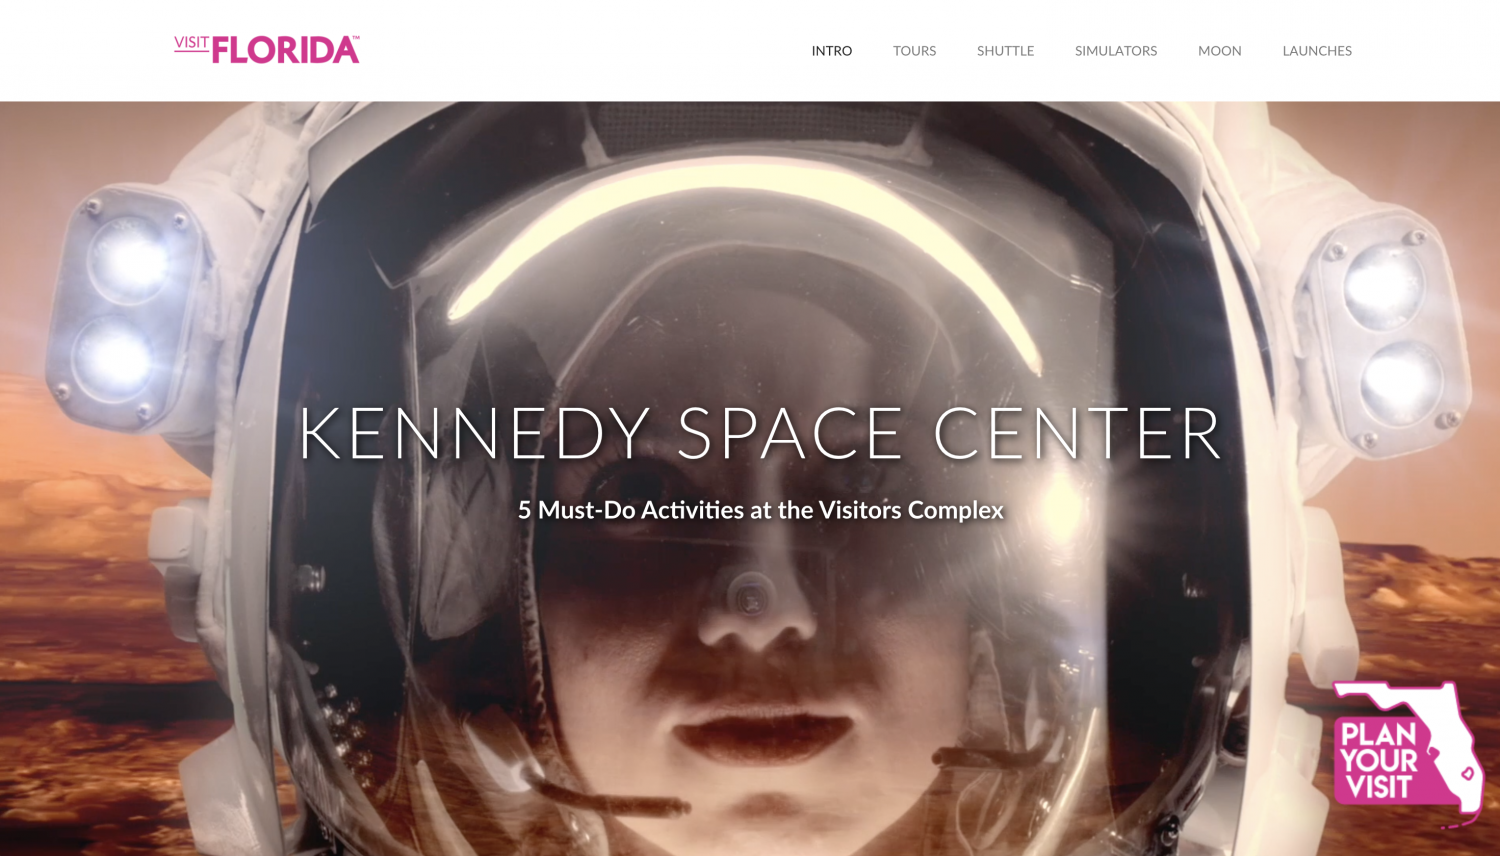 KENNEDY SPACE CENTER 5 Must-Do Activities at the Visitors Complex Infographic